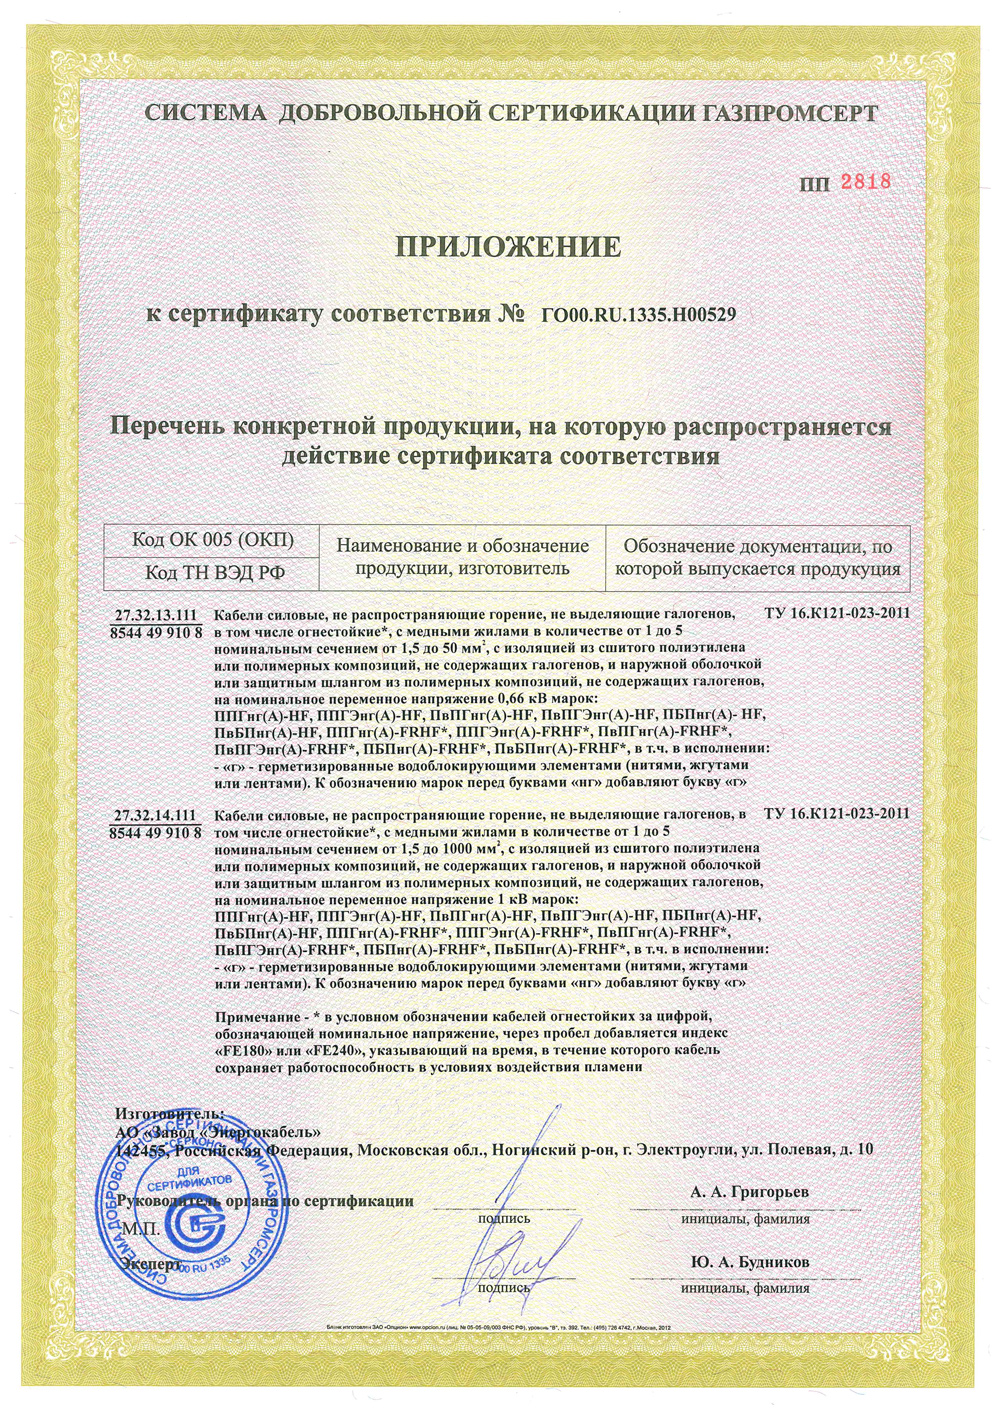 The appendix to the Certificate of Conformity № ГО00.RU.1335.Н00529.